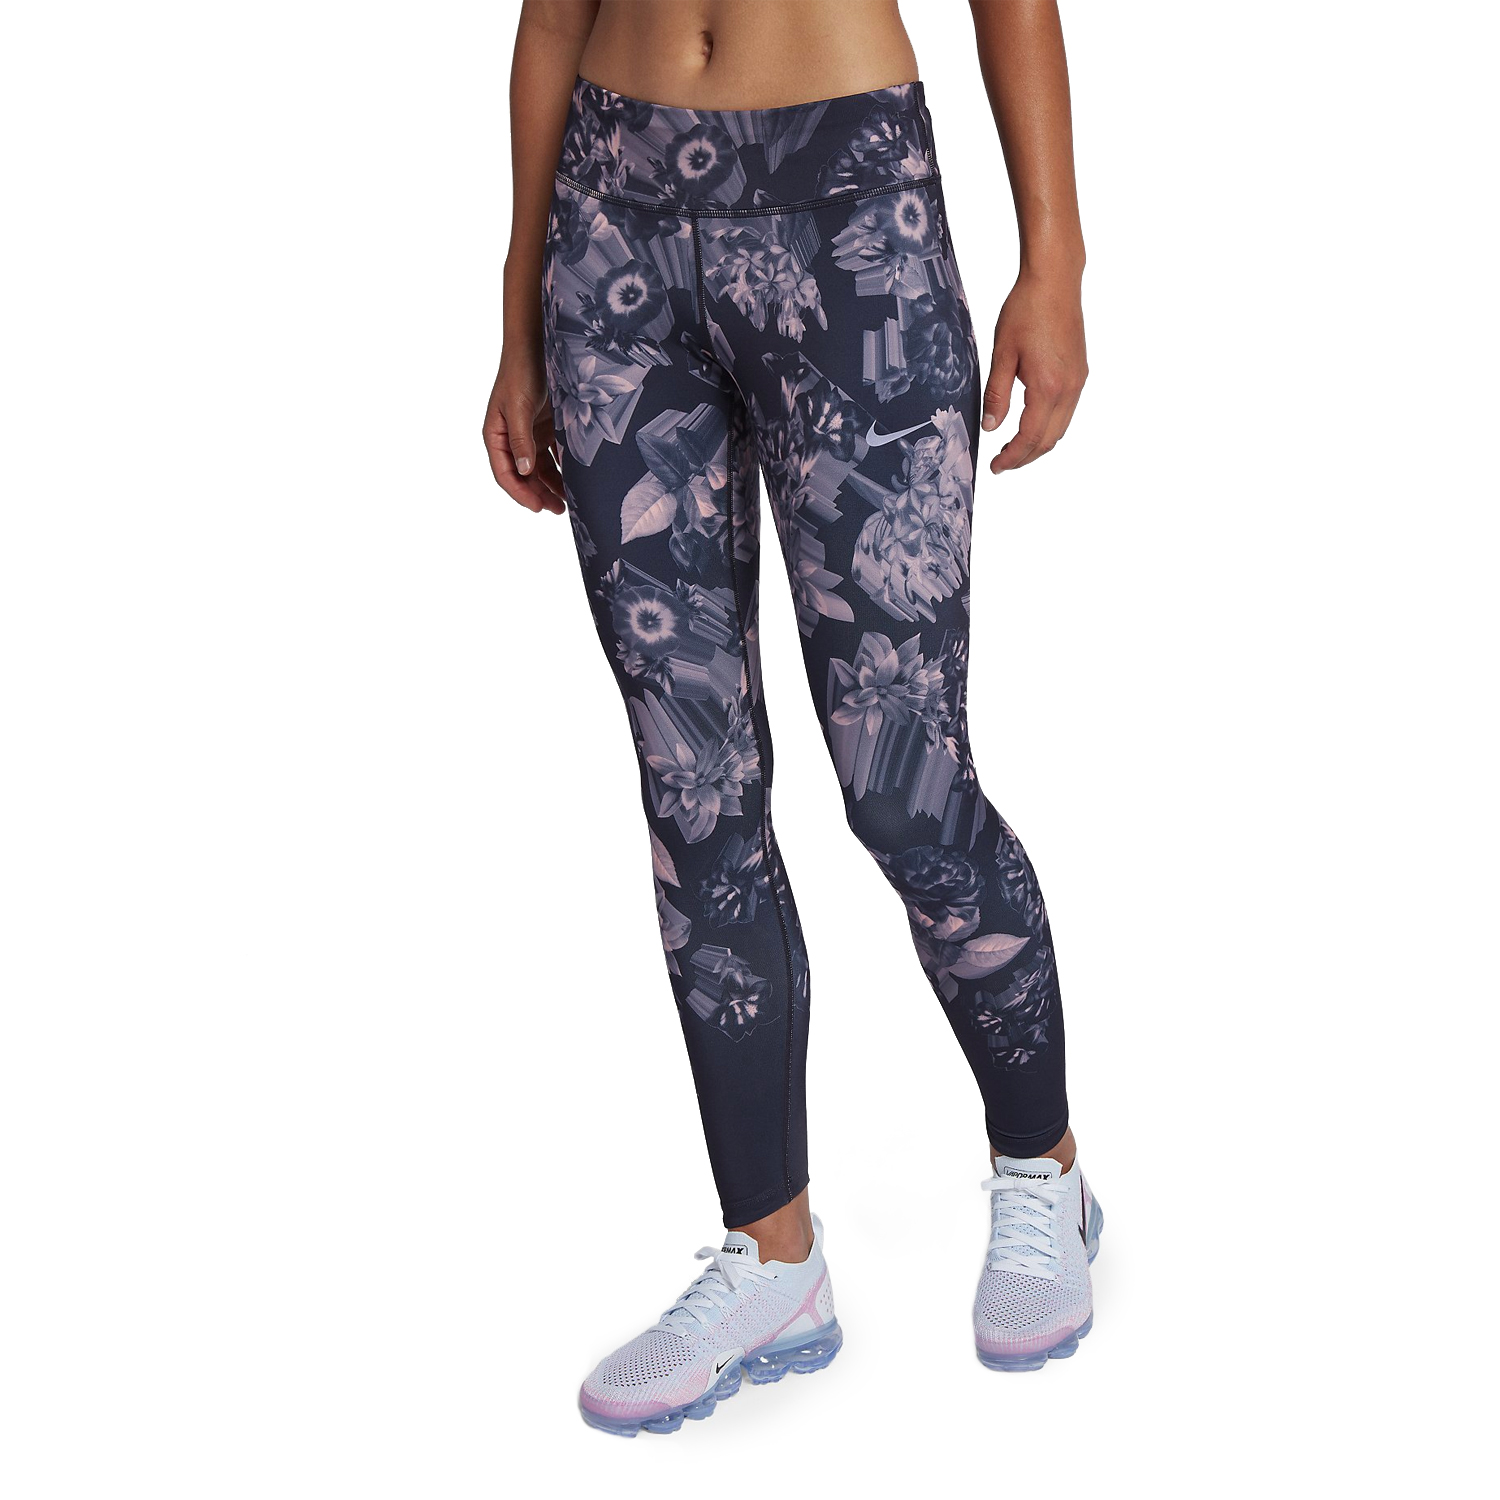 Nike Epic Lux Tights - Grey/Pink